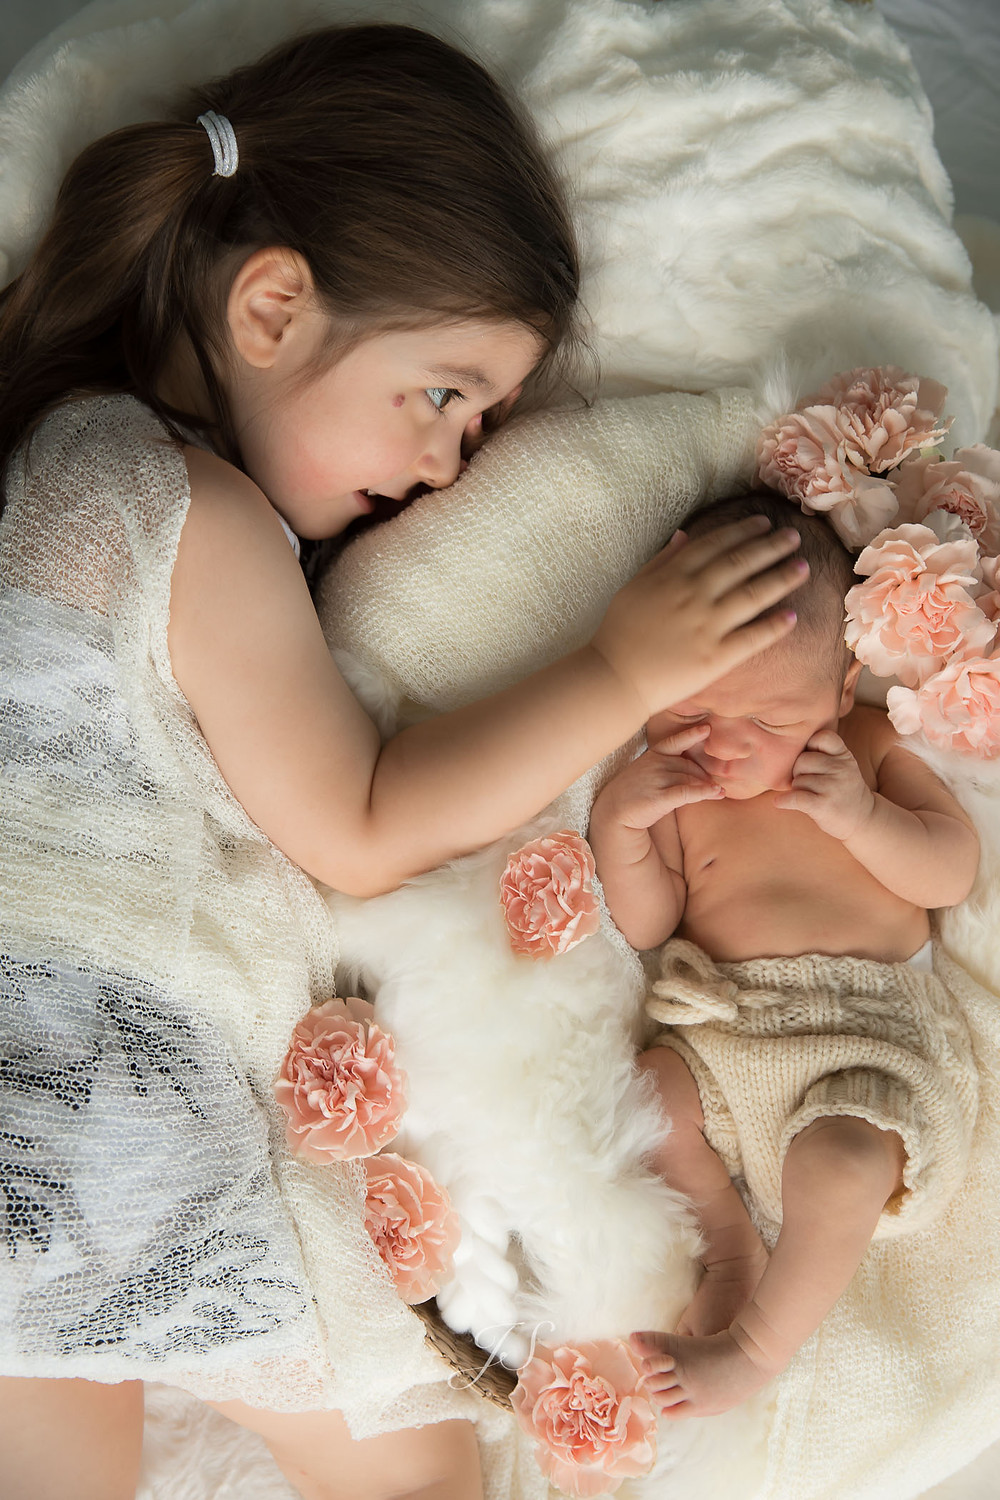 newborn love joanne schwindt photography